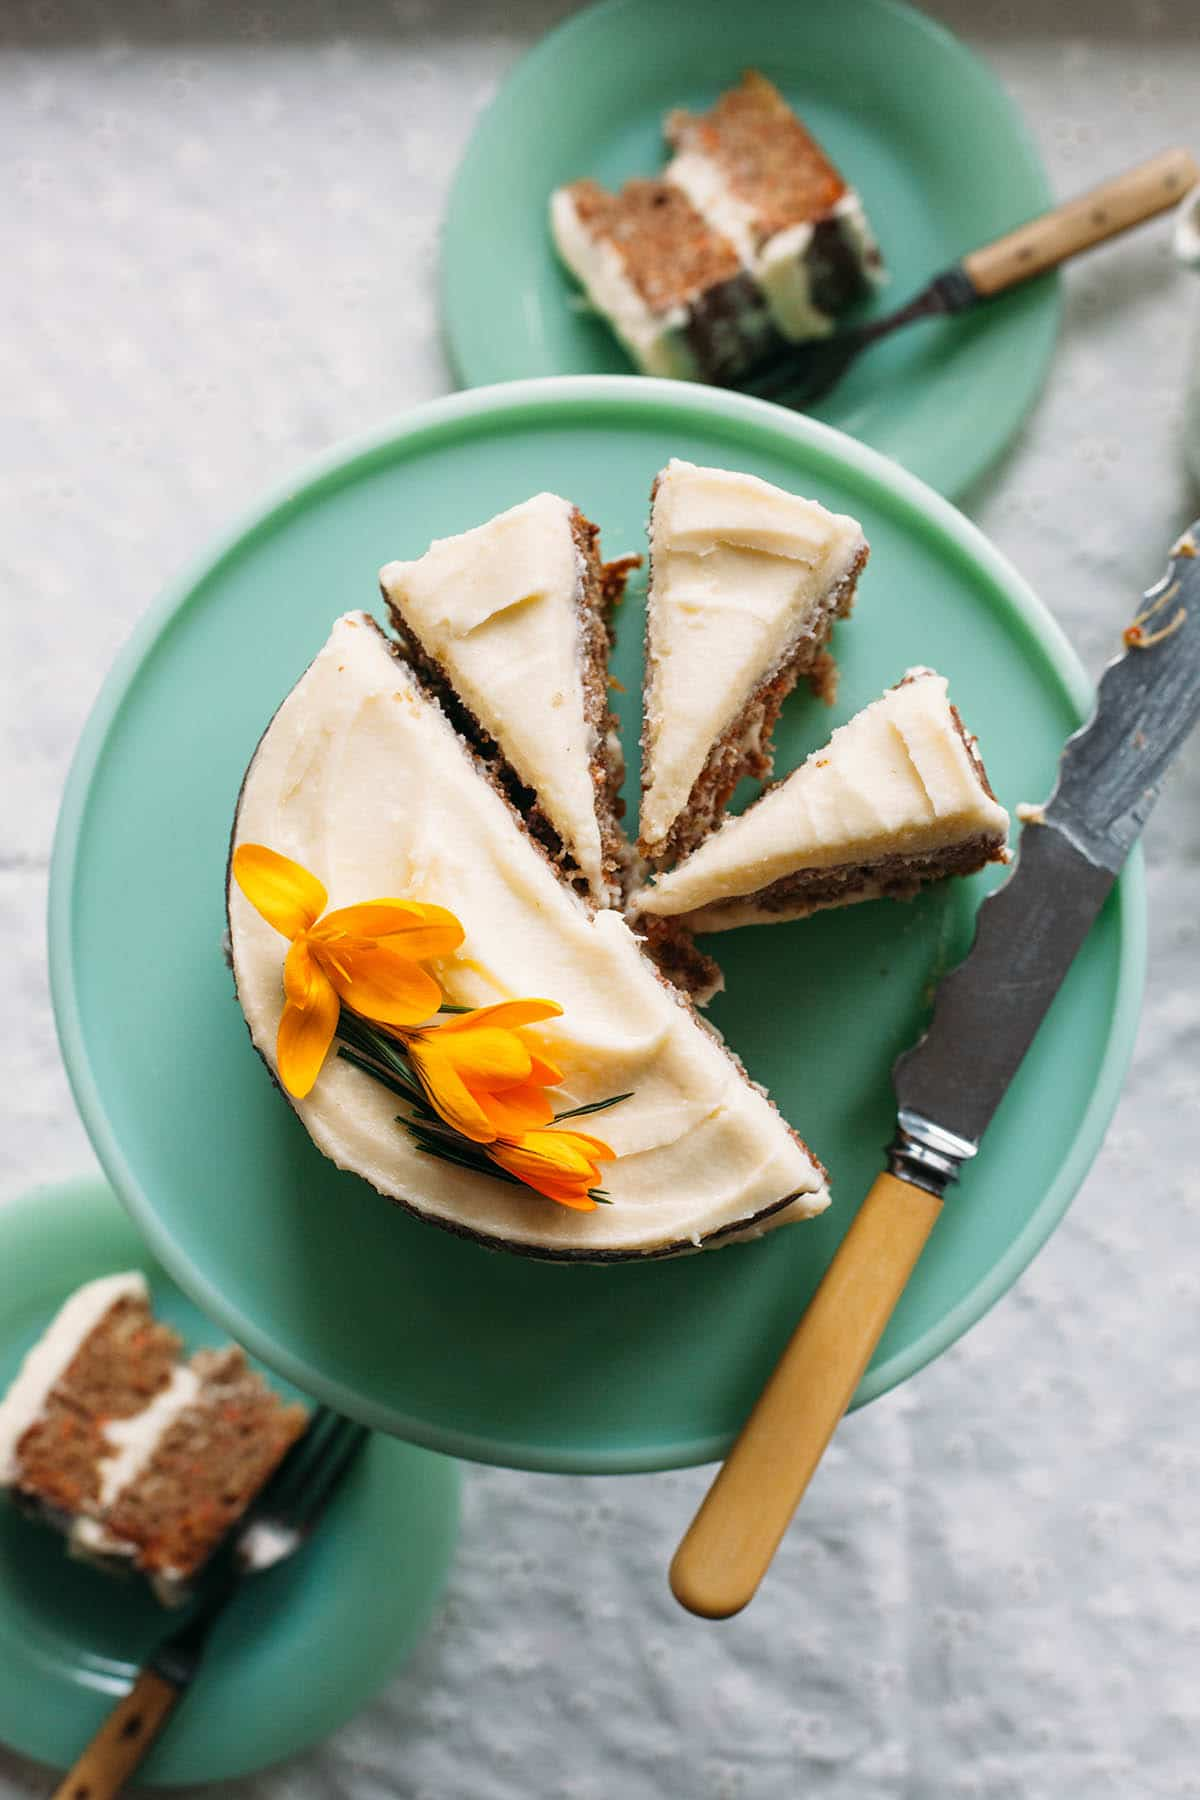 Sliced spiced carrot cake with pineapple on a cake stand.